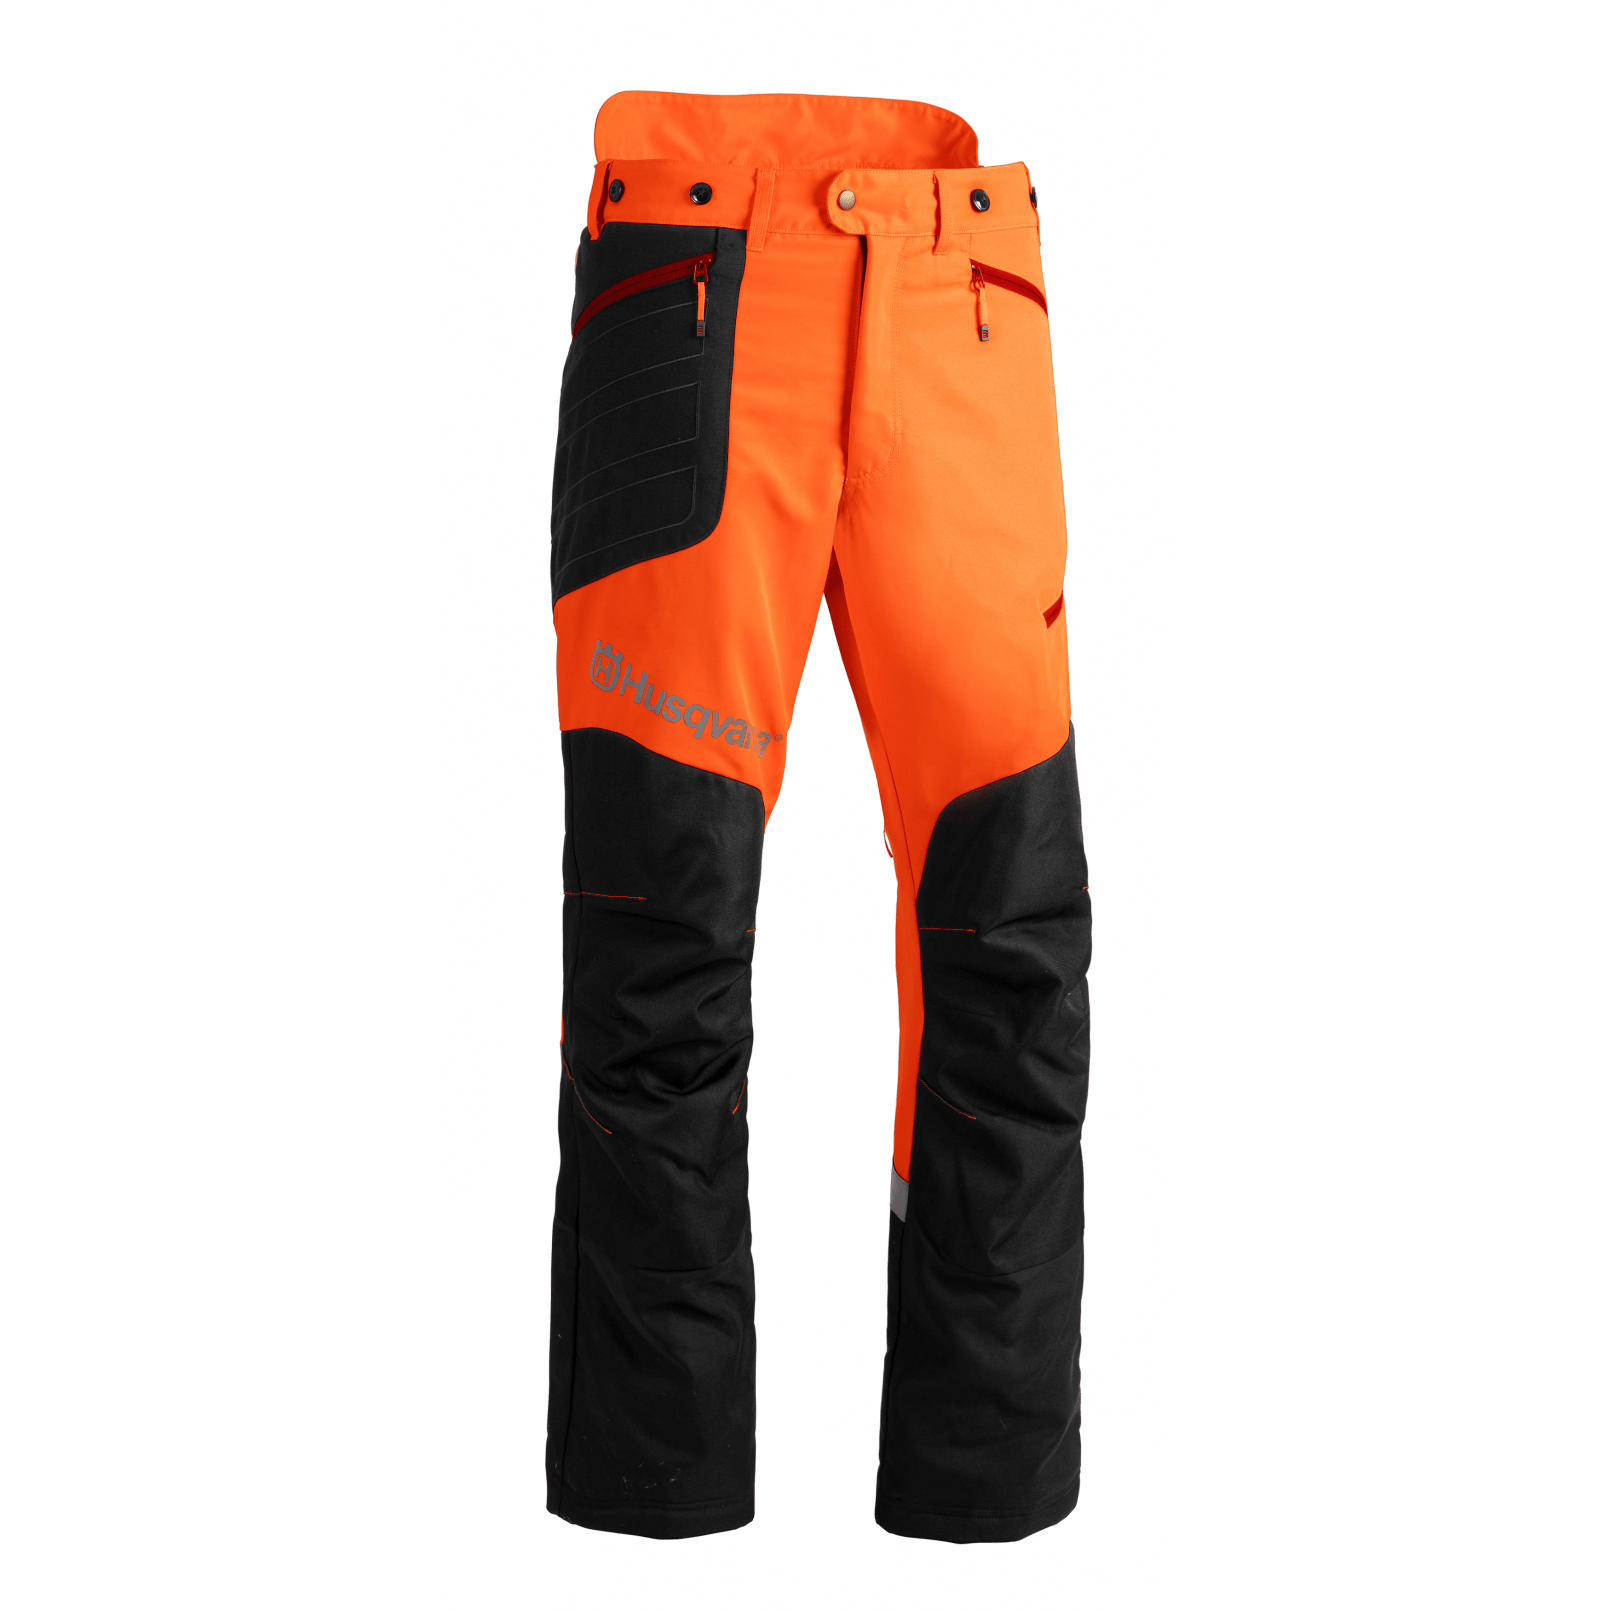 HUSQVARNA Brushcutting and Trimmer Trousers, Technical - V-Pro Power Equipment